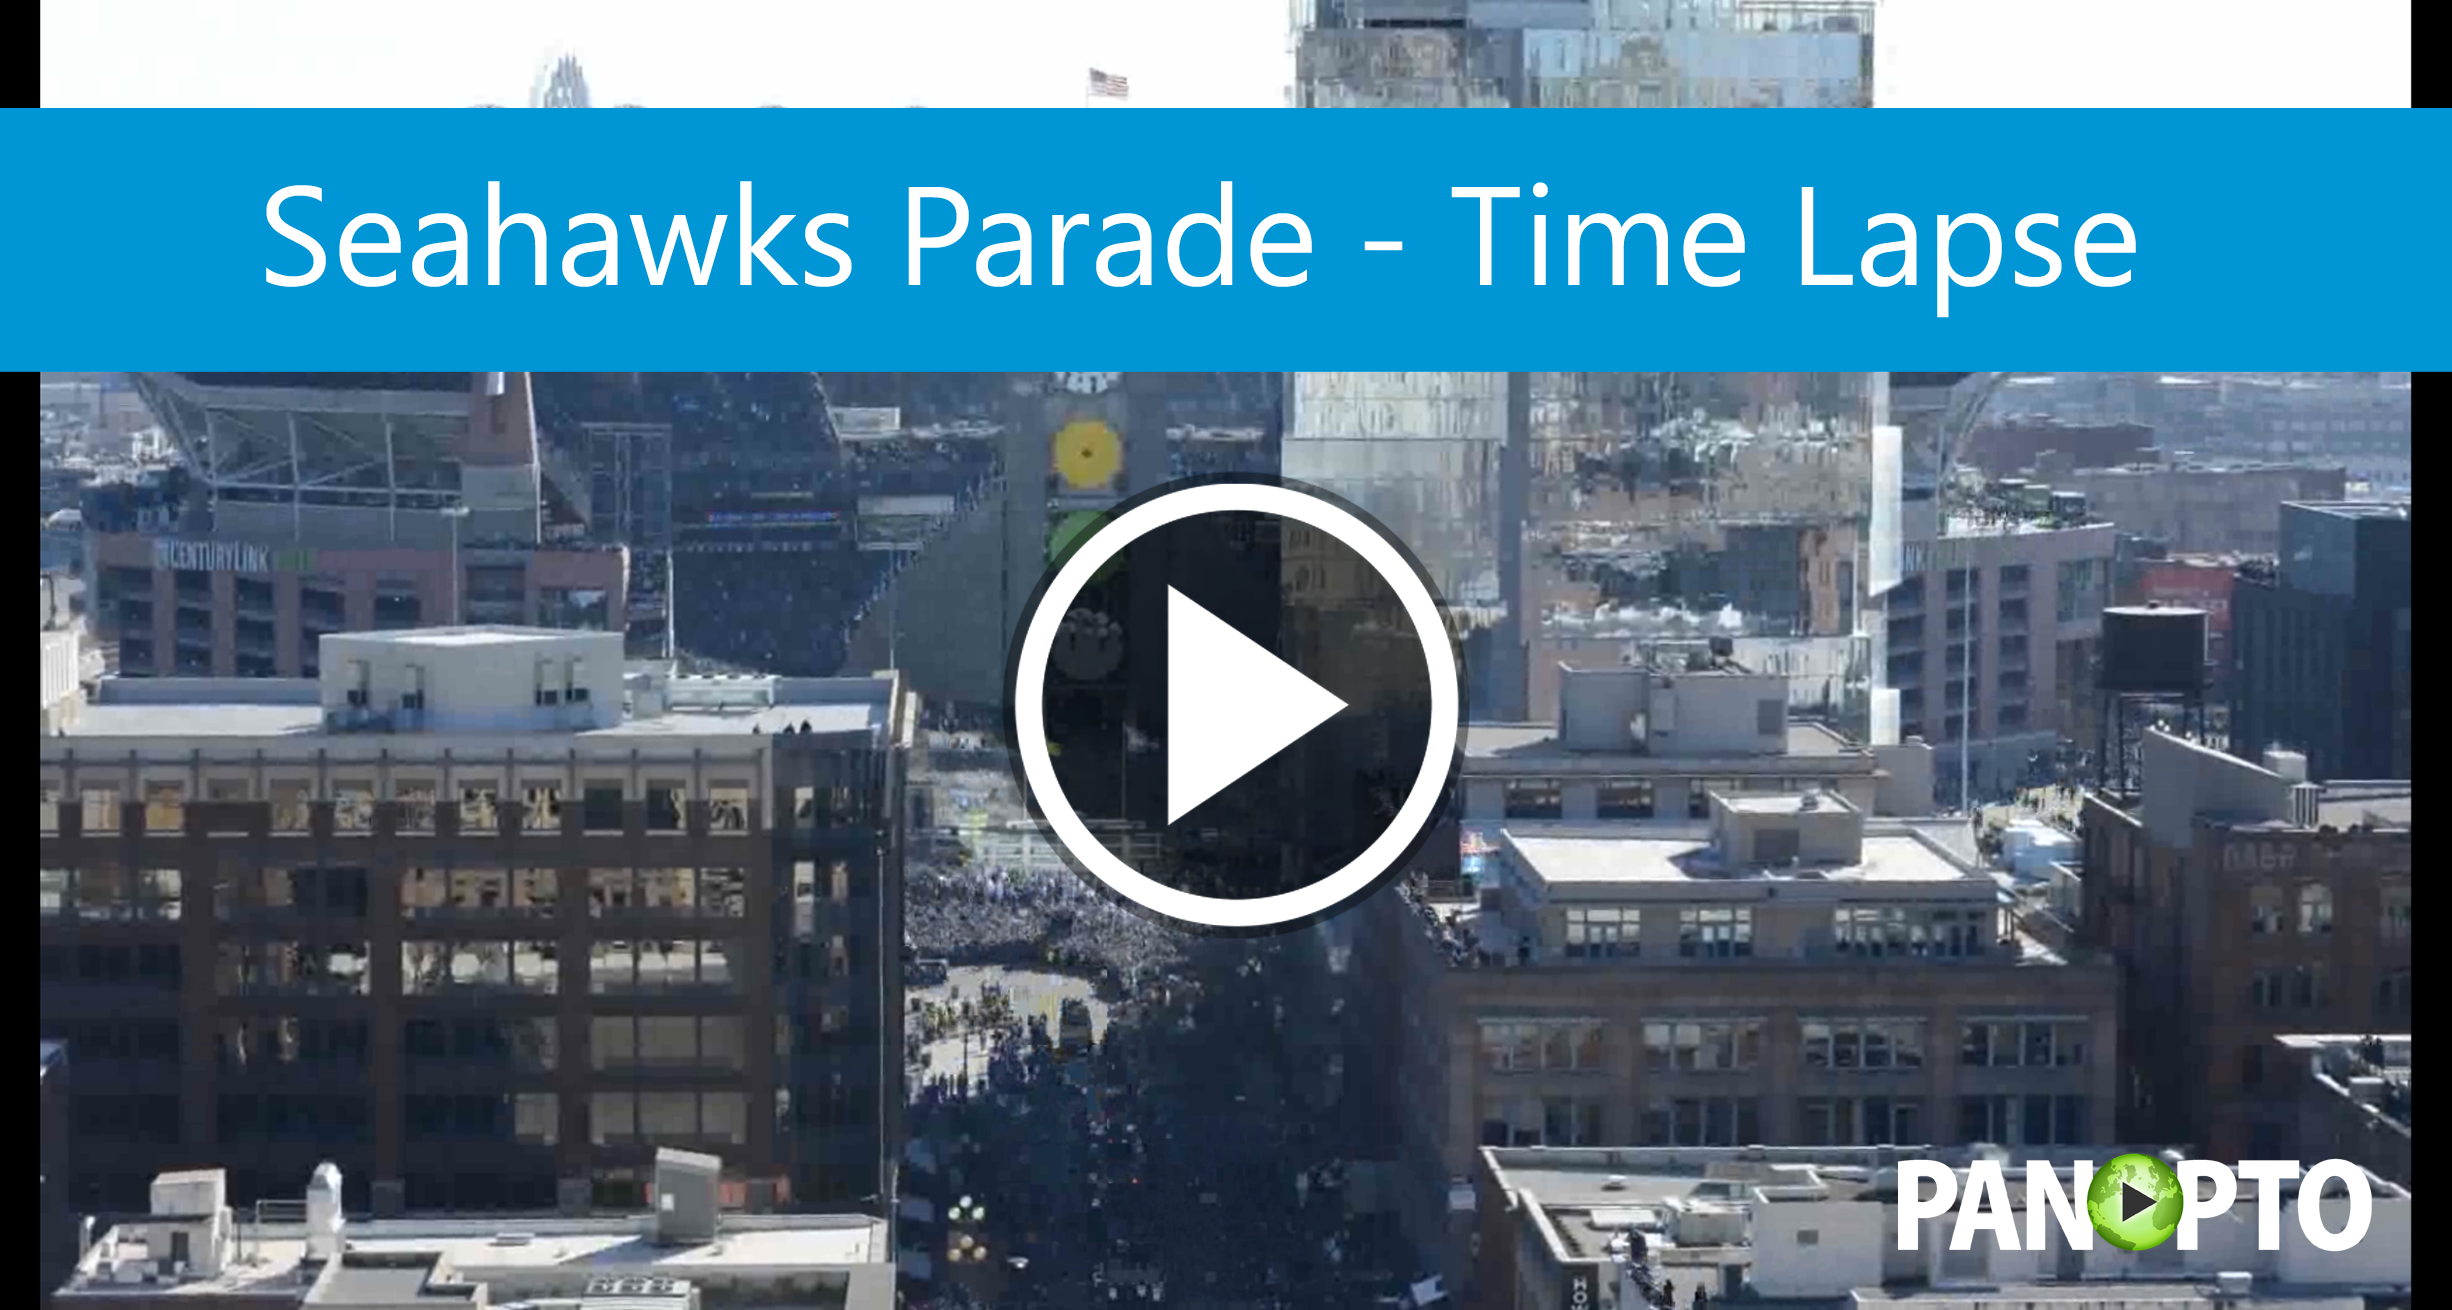 Seahawks Parade Time Lapse - Panopto Video Platform_1